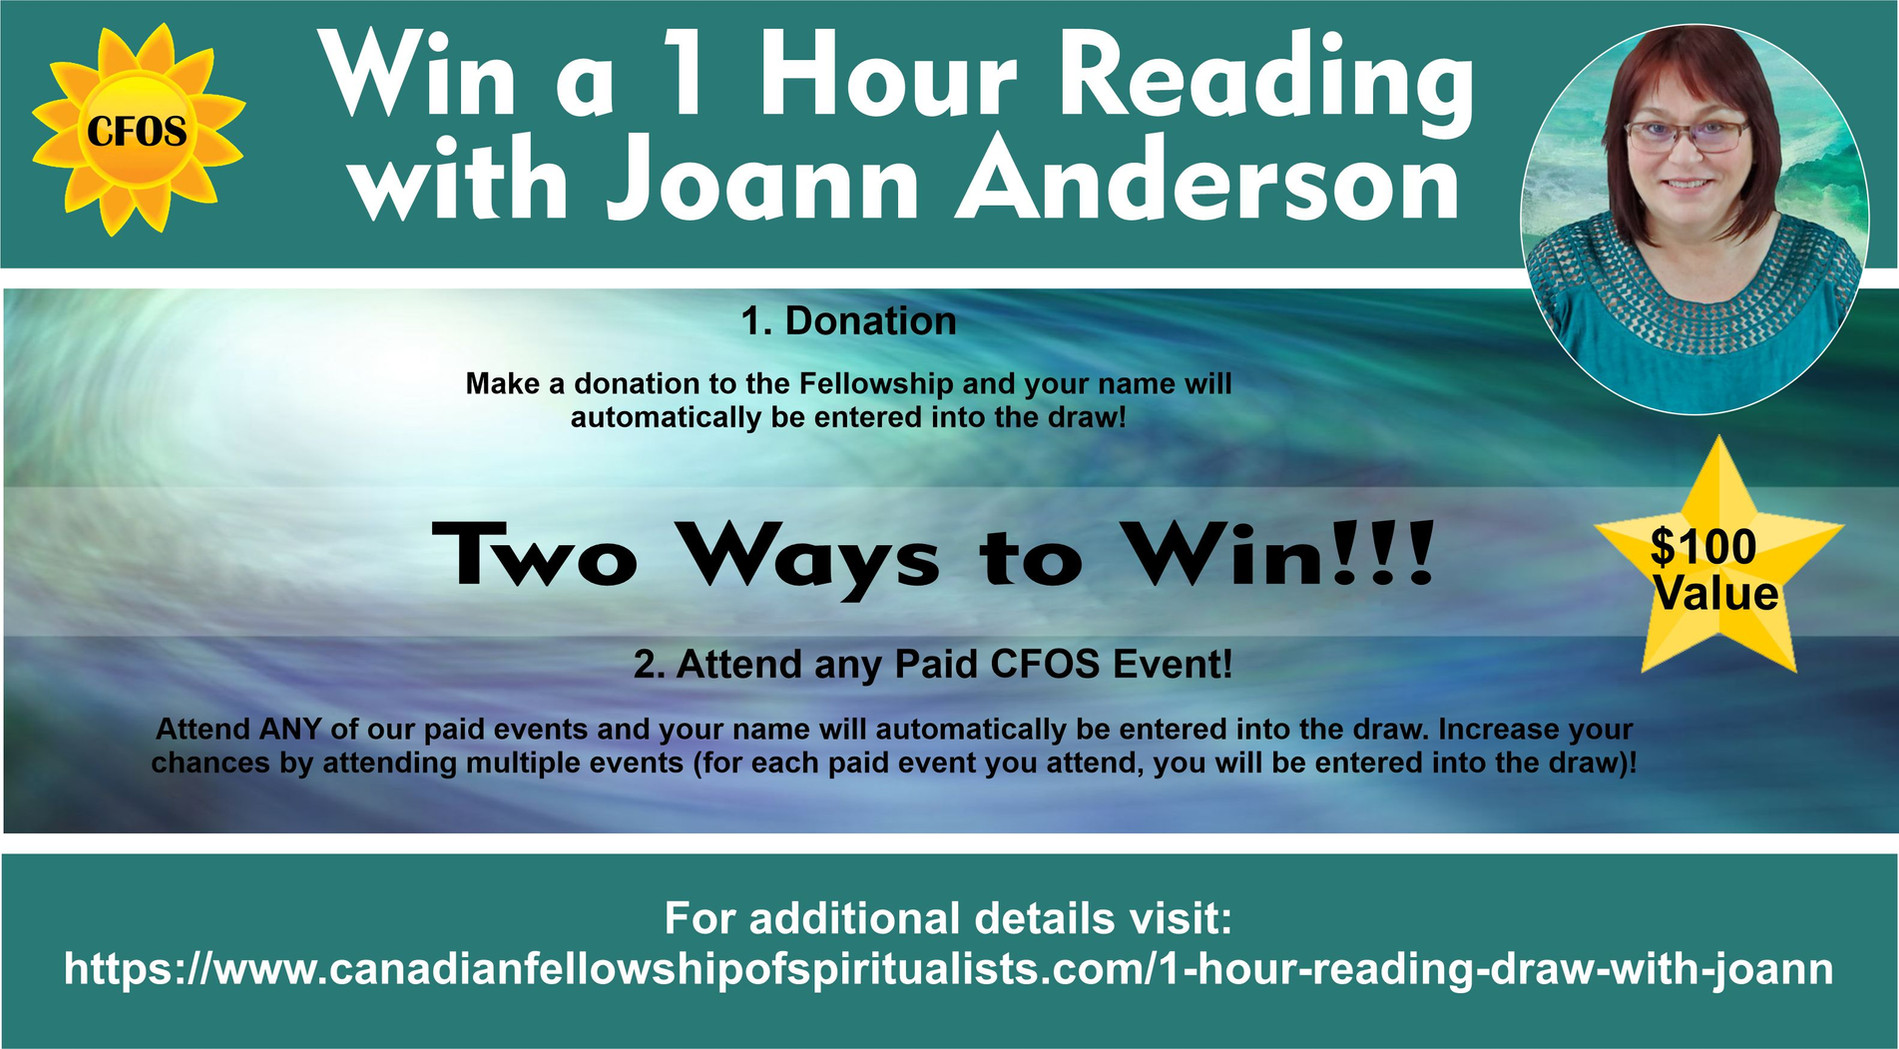 Win a 1 Hour Reading Draw